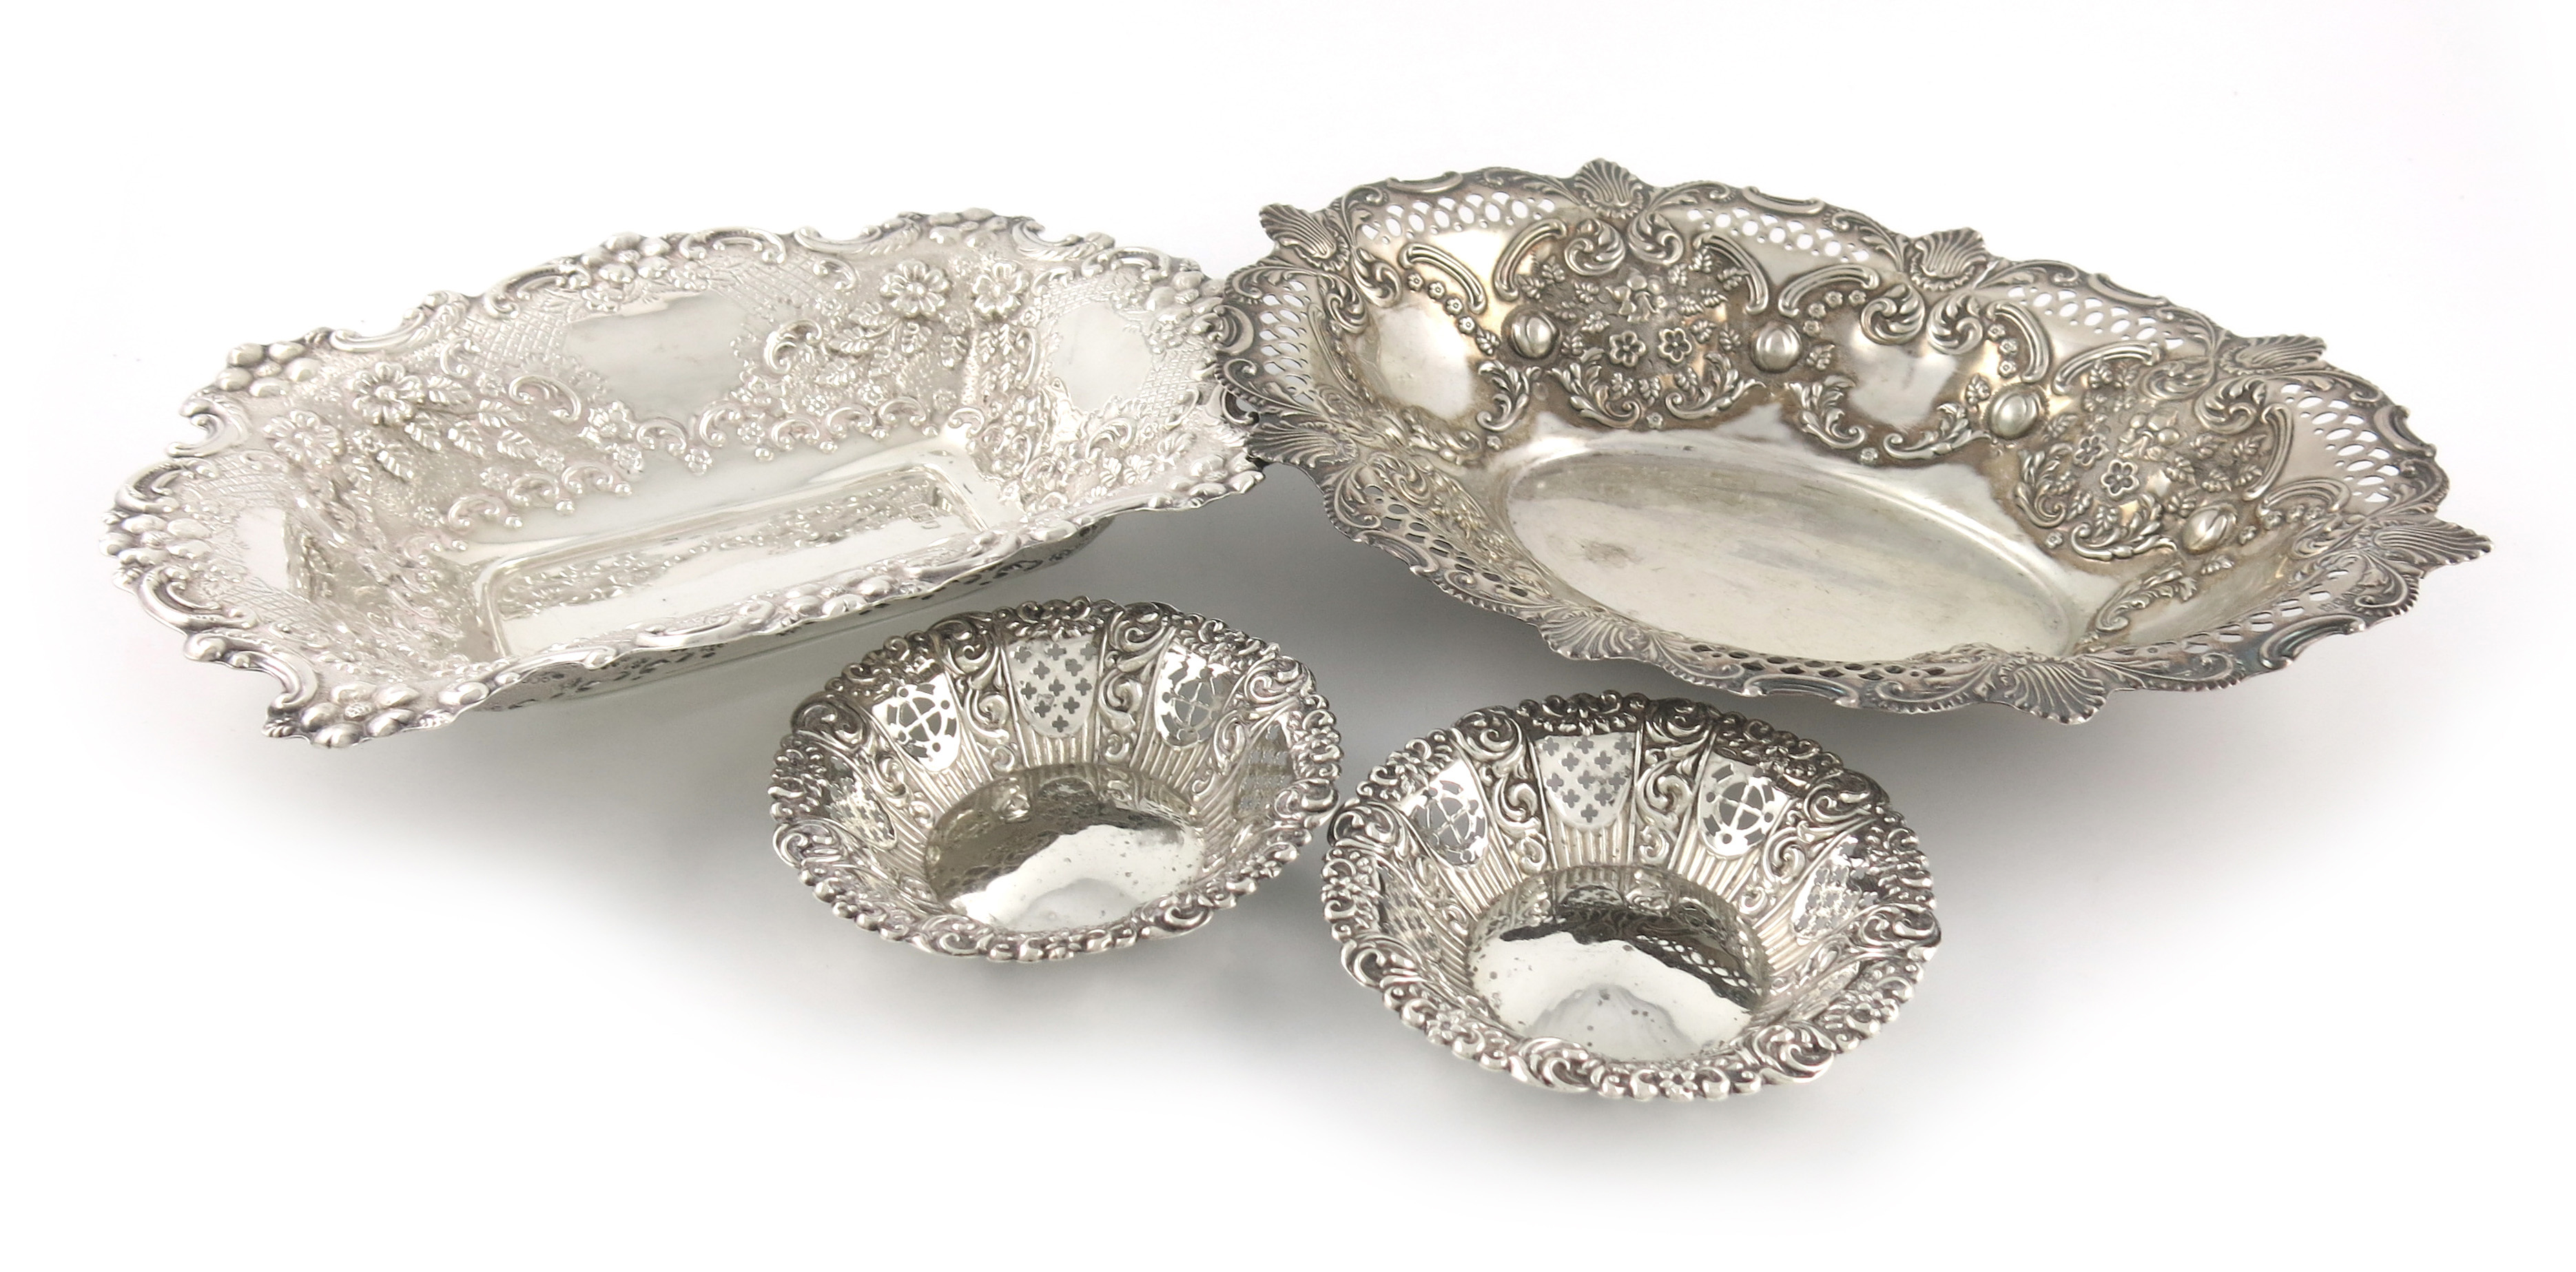 A small collection of four silver dishes